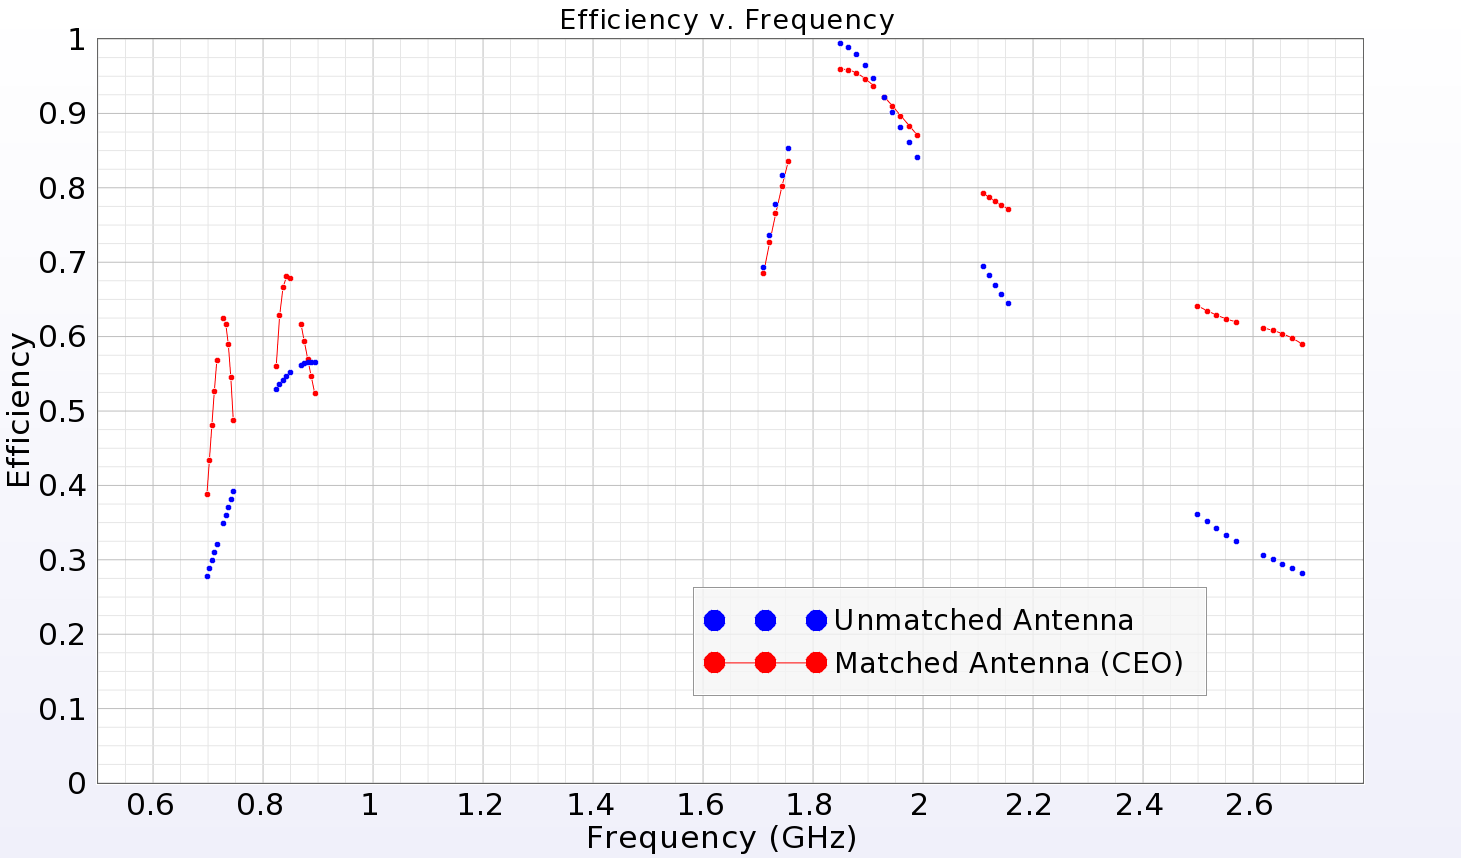 Figure 7: System efficiency of matched and unmatched antenna.